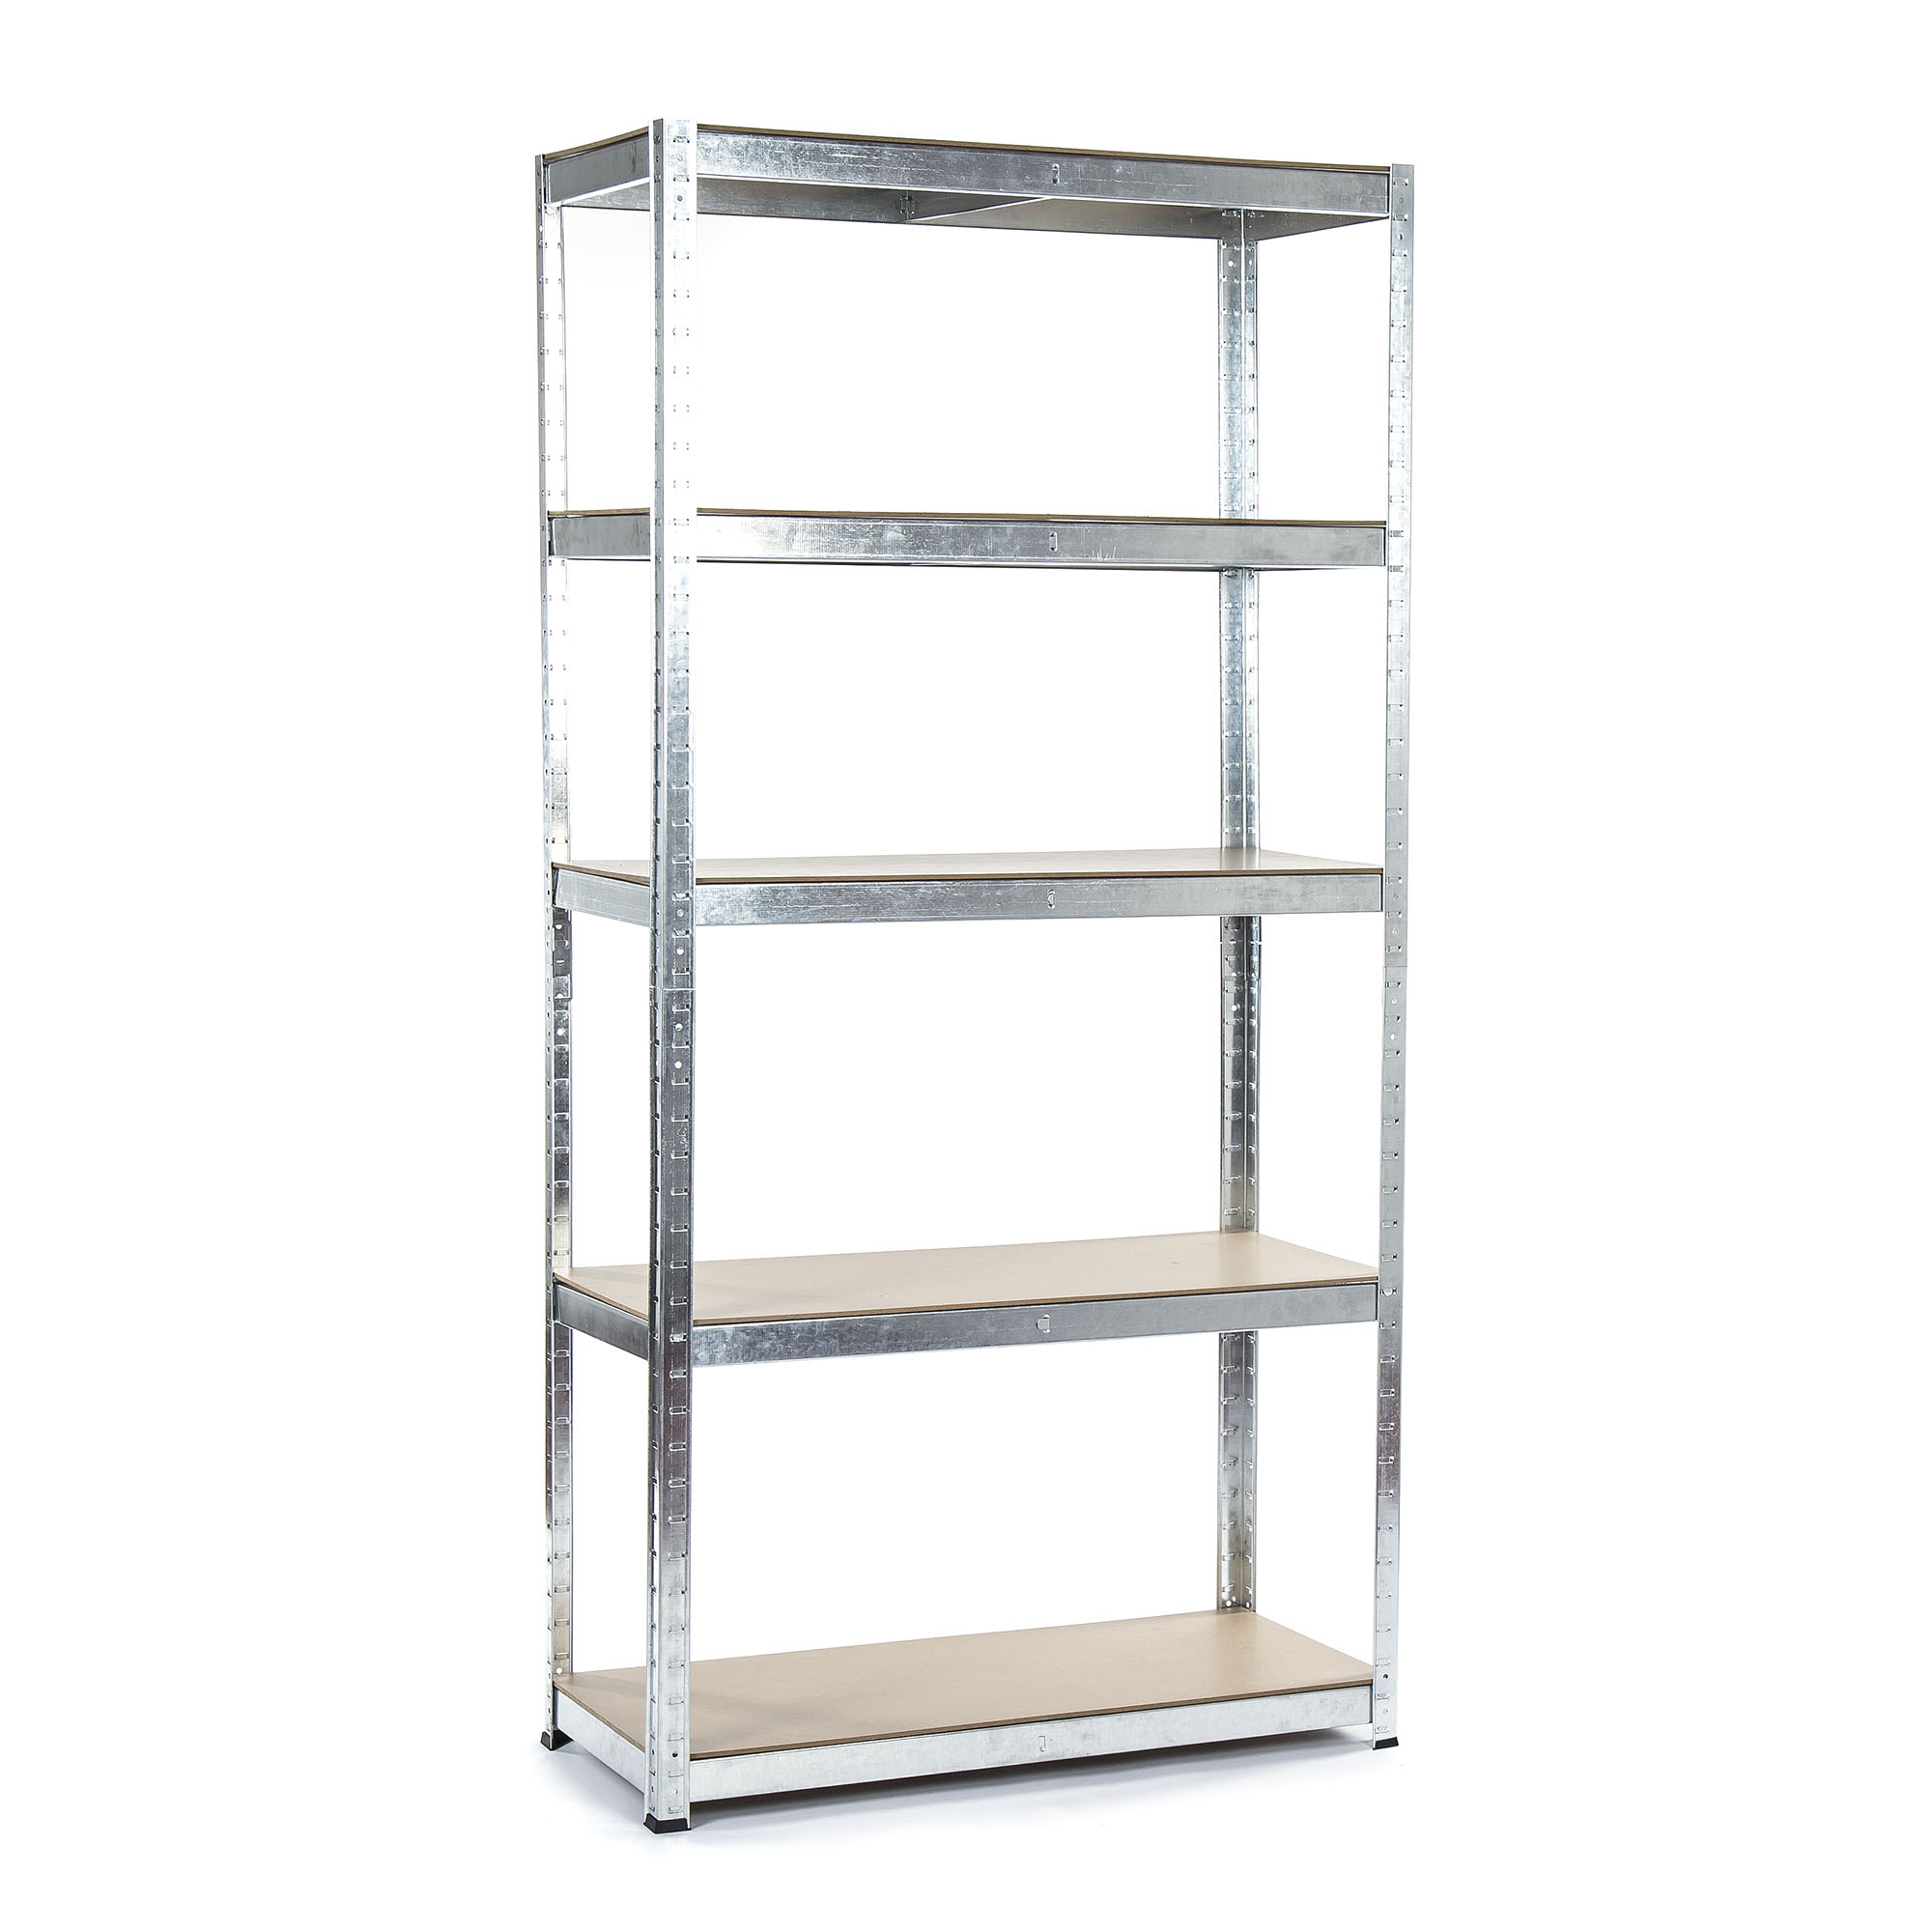 Easy to assemble Galvanised Shelving - Assembly Instructions